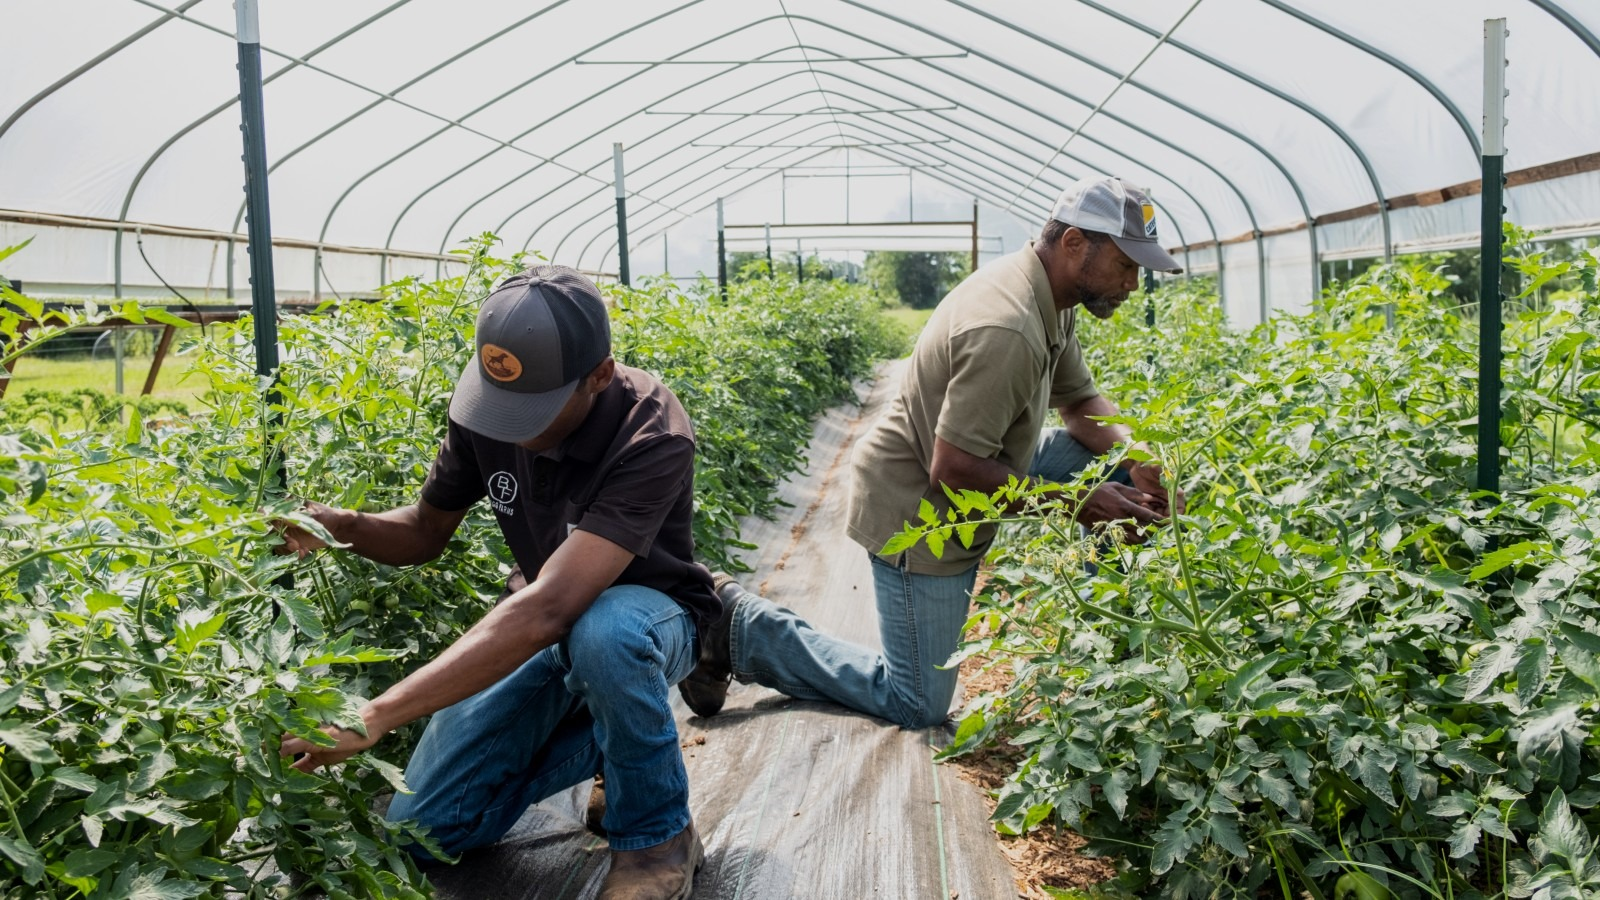 Two workers tend to produce growing at Bugg Farms, a Common Market partner